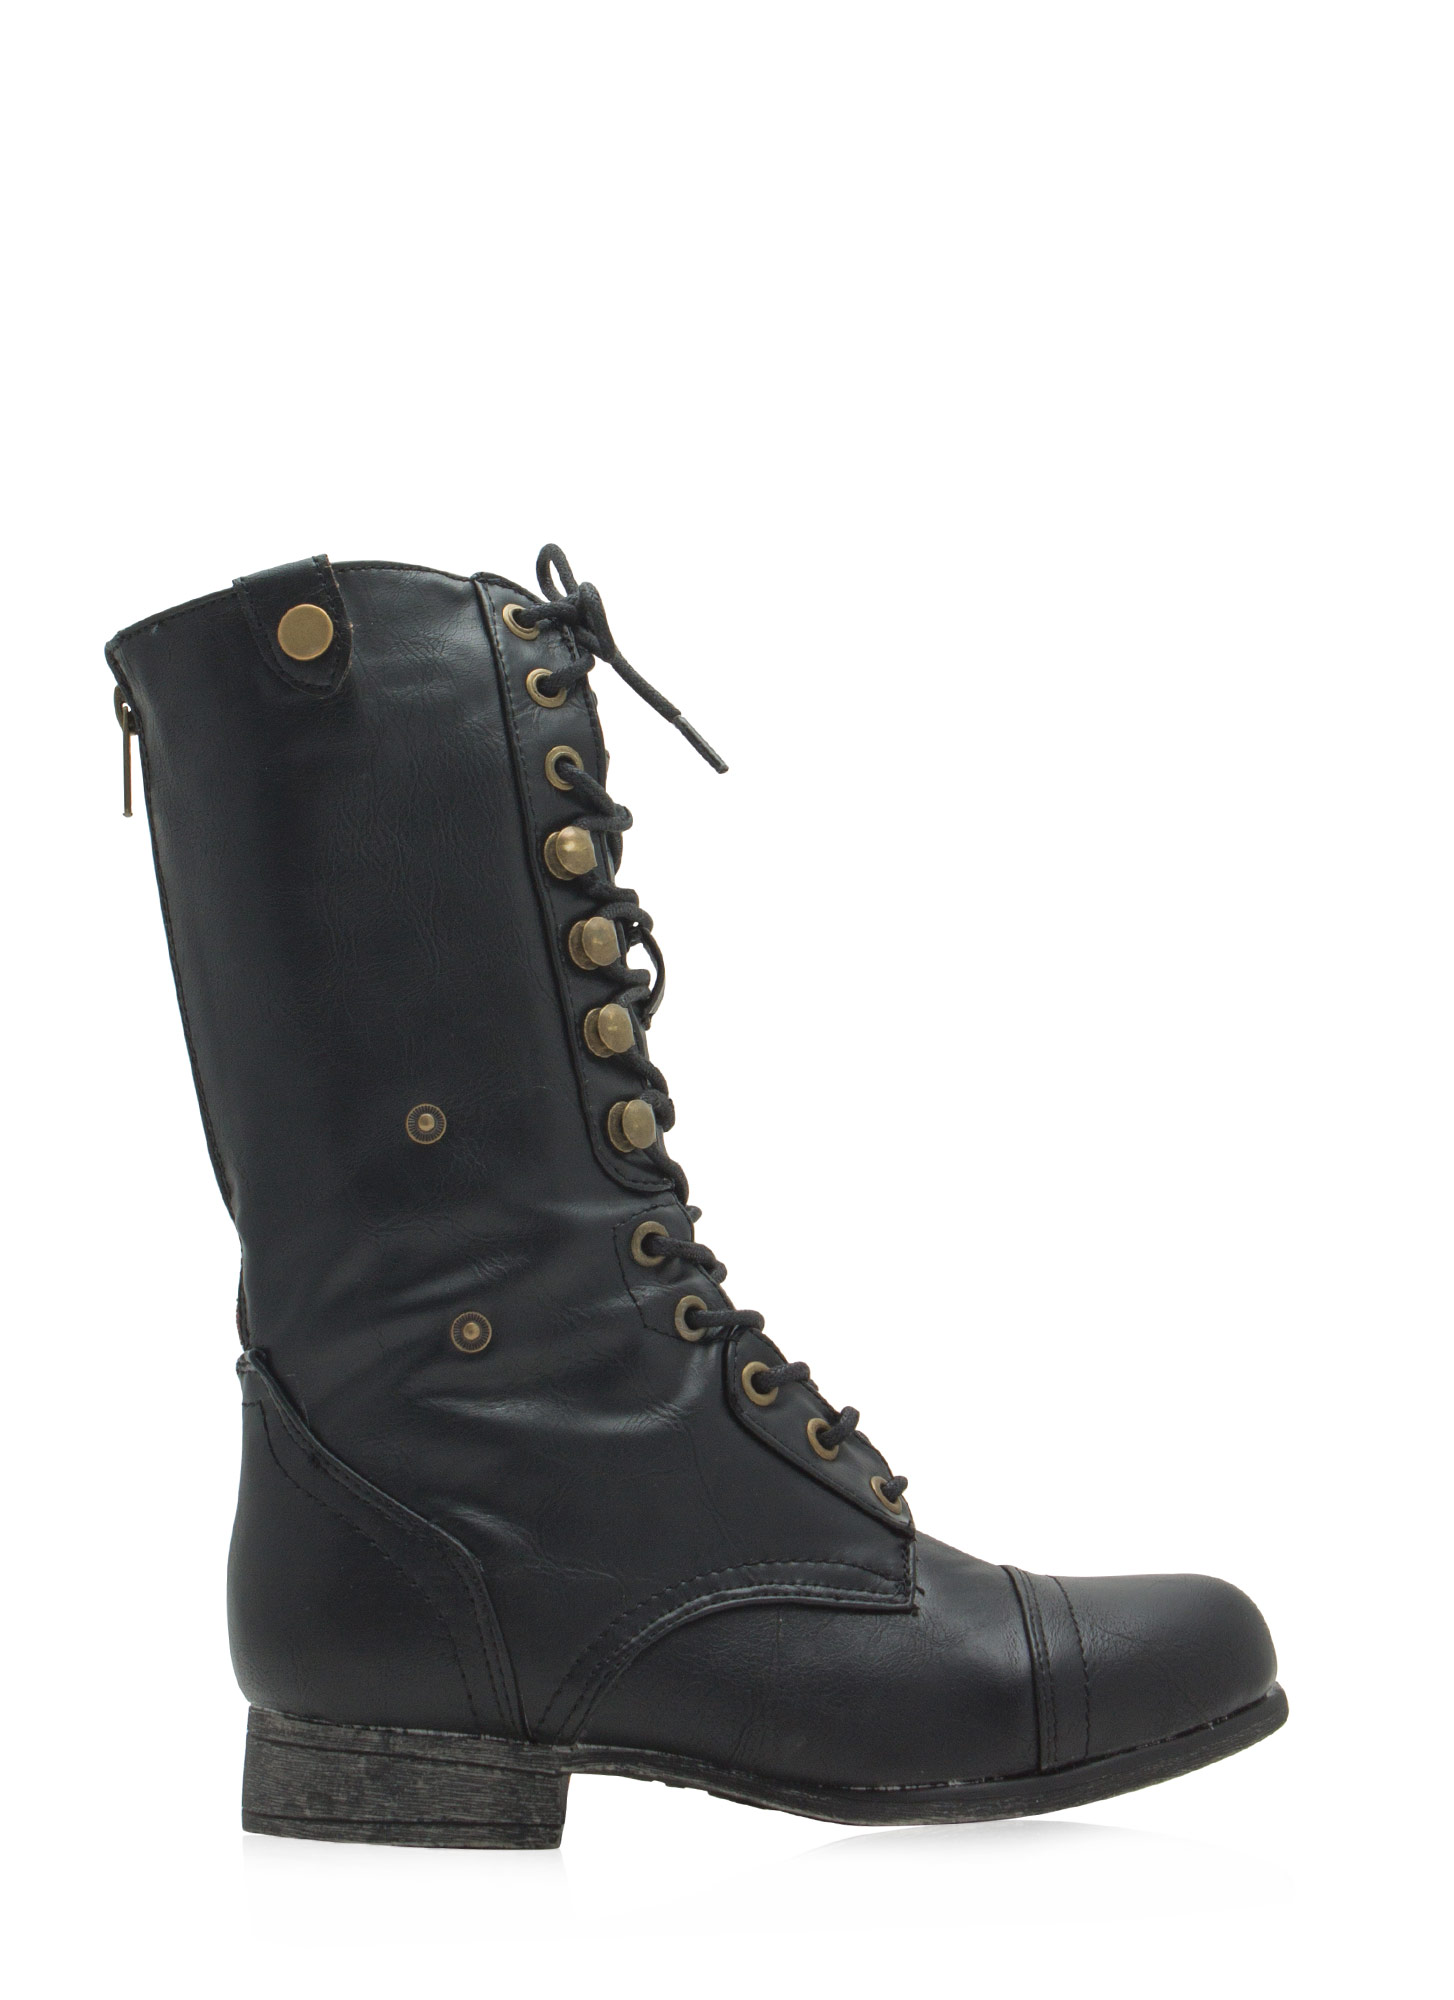 Foldover Lace-Up Combat Boots BLACKLEOPARD